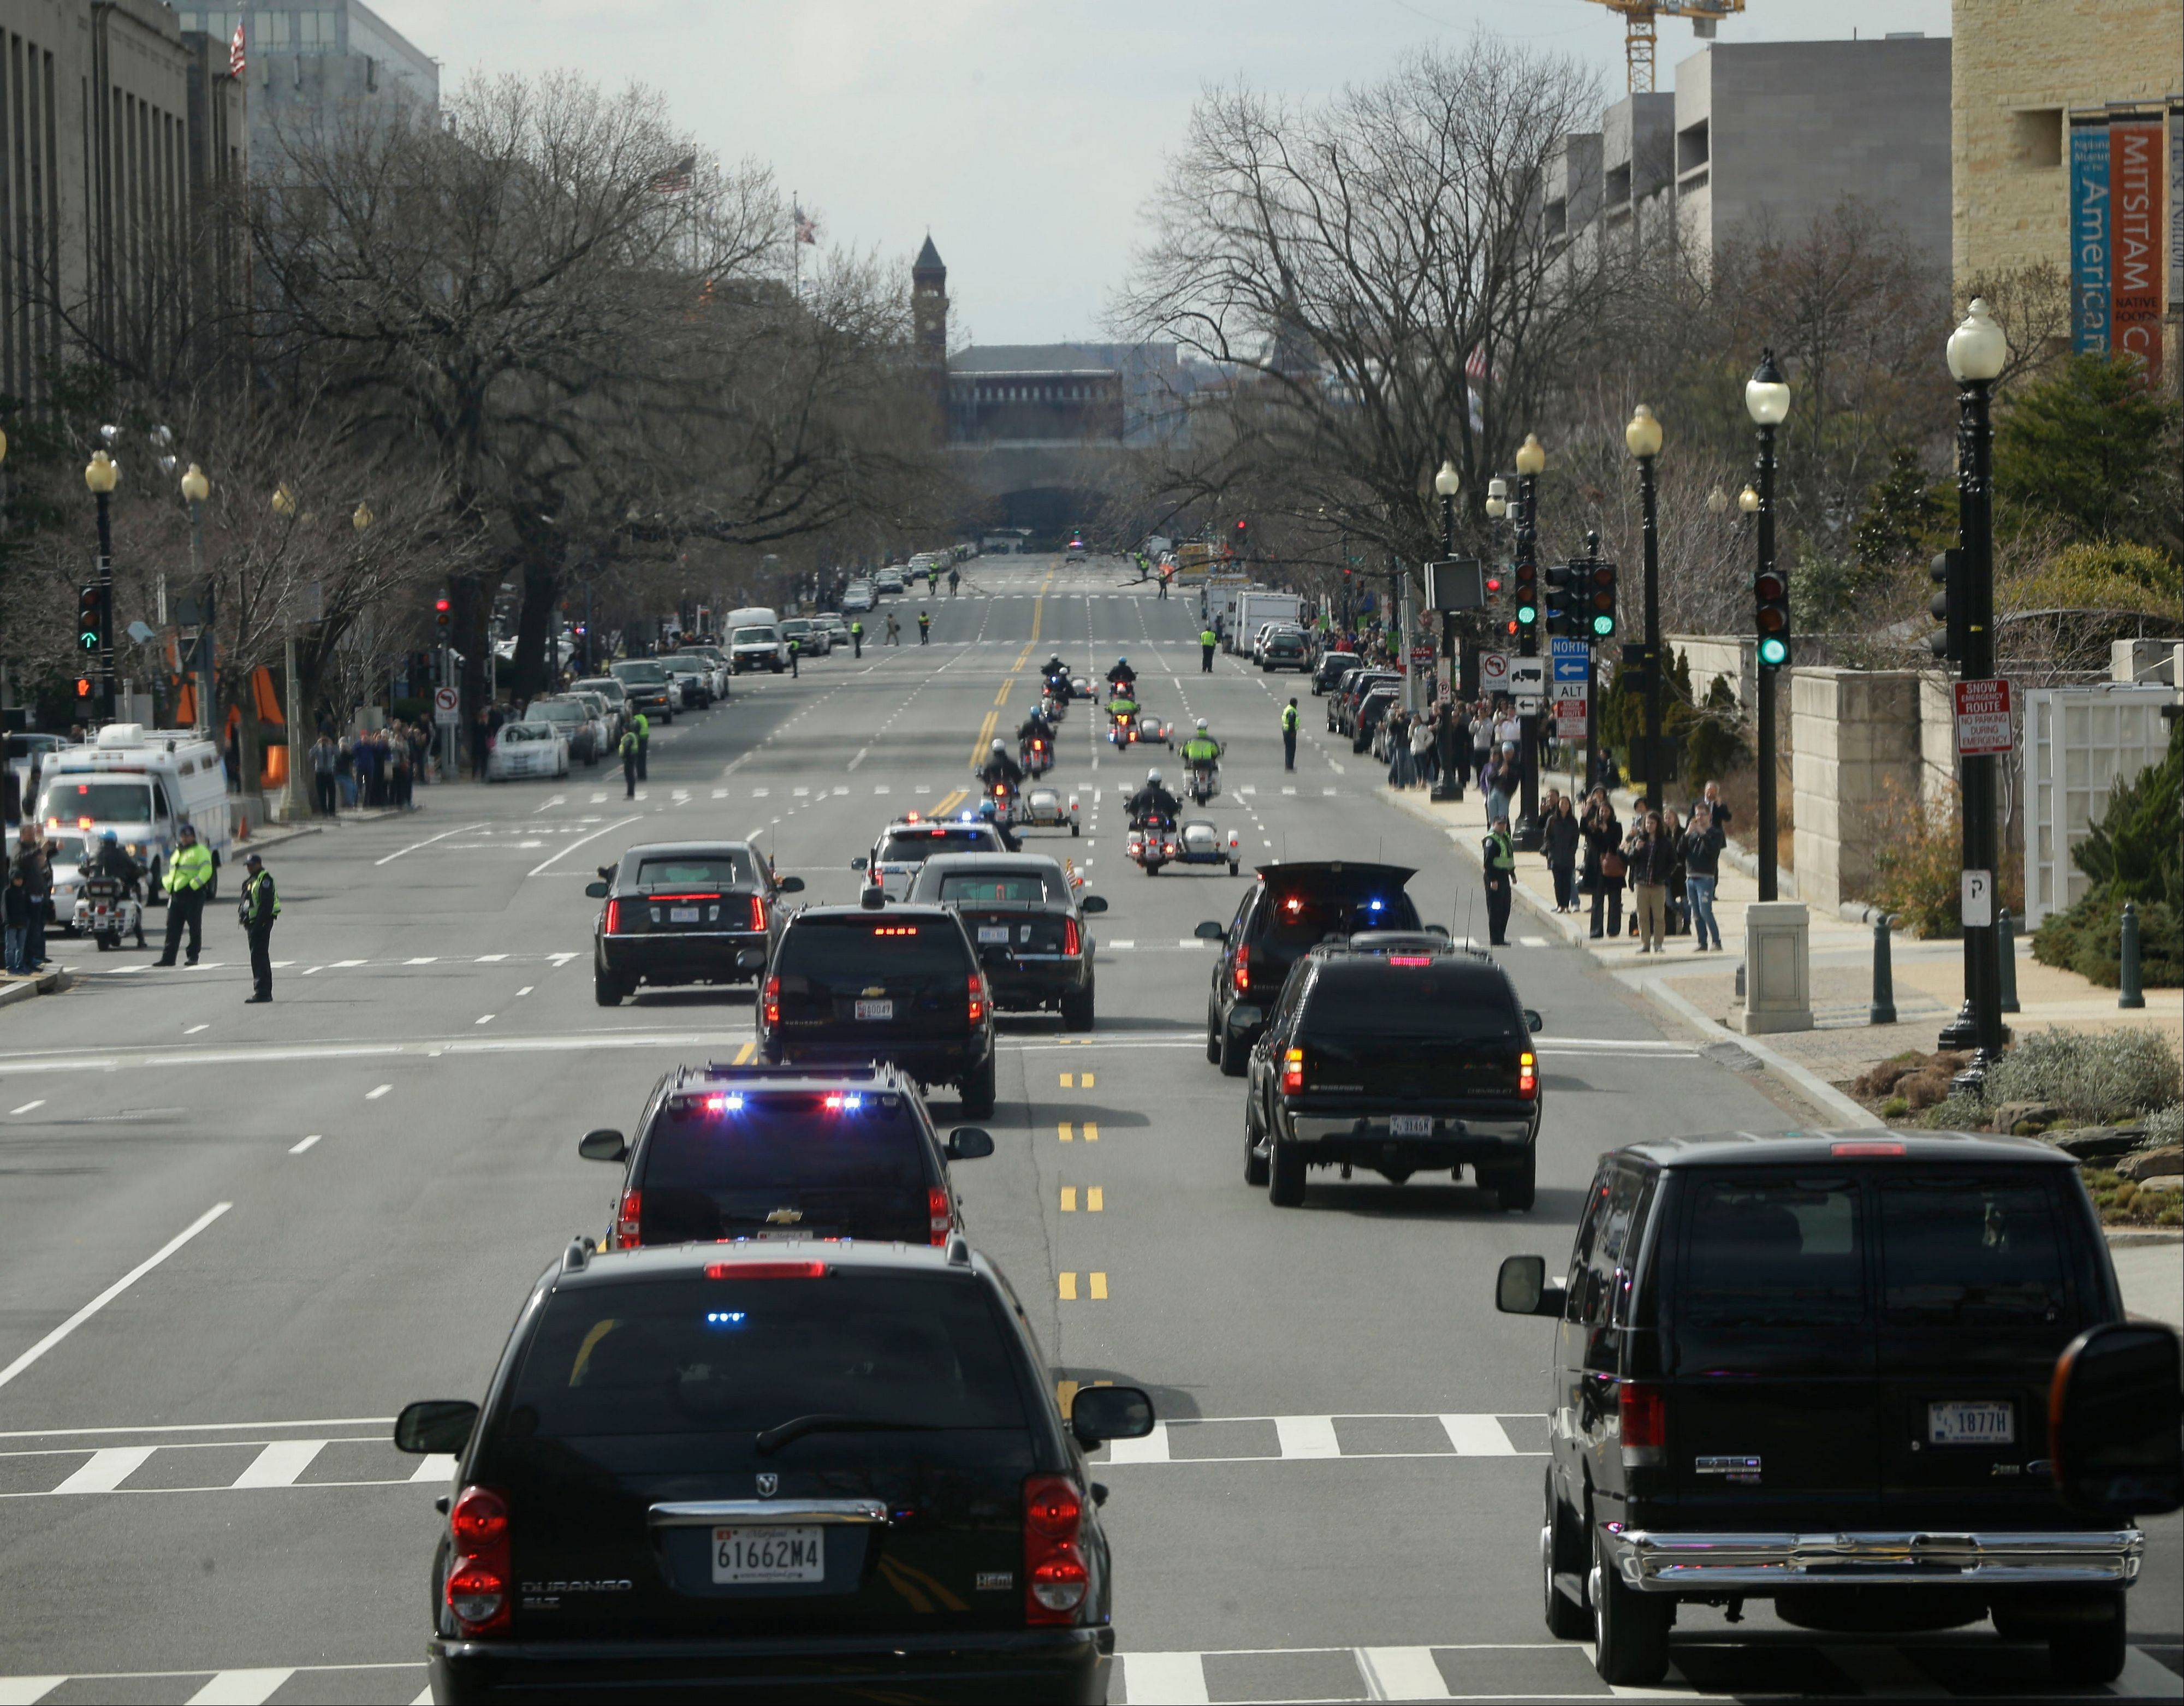 President Barack Obama�s motorcade is seen on Independence Ave., on the return trip to the White House in Washington, Wednesday.